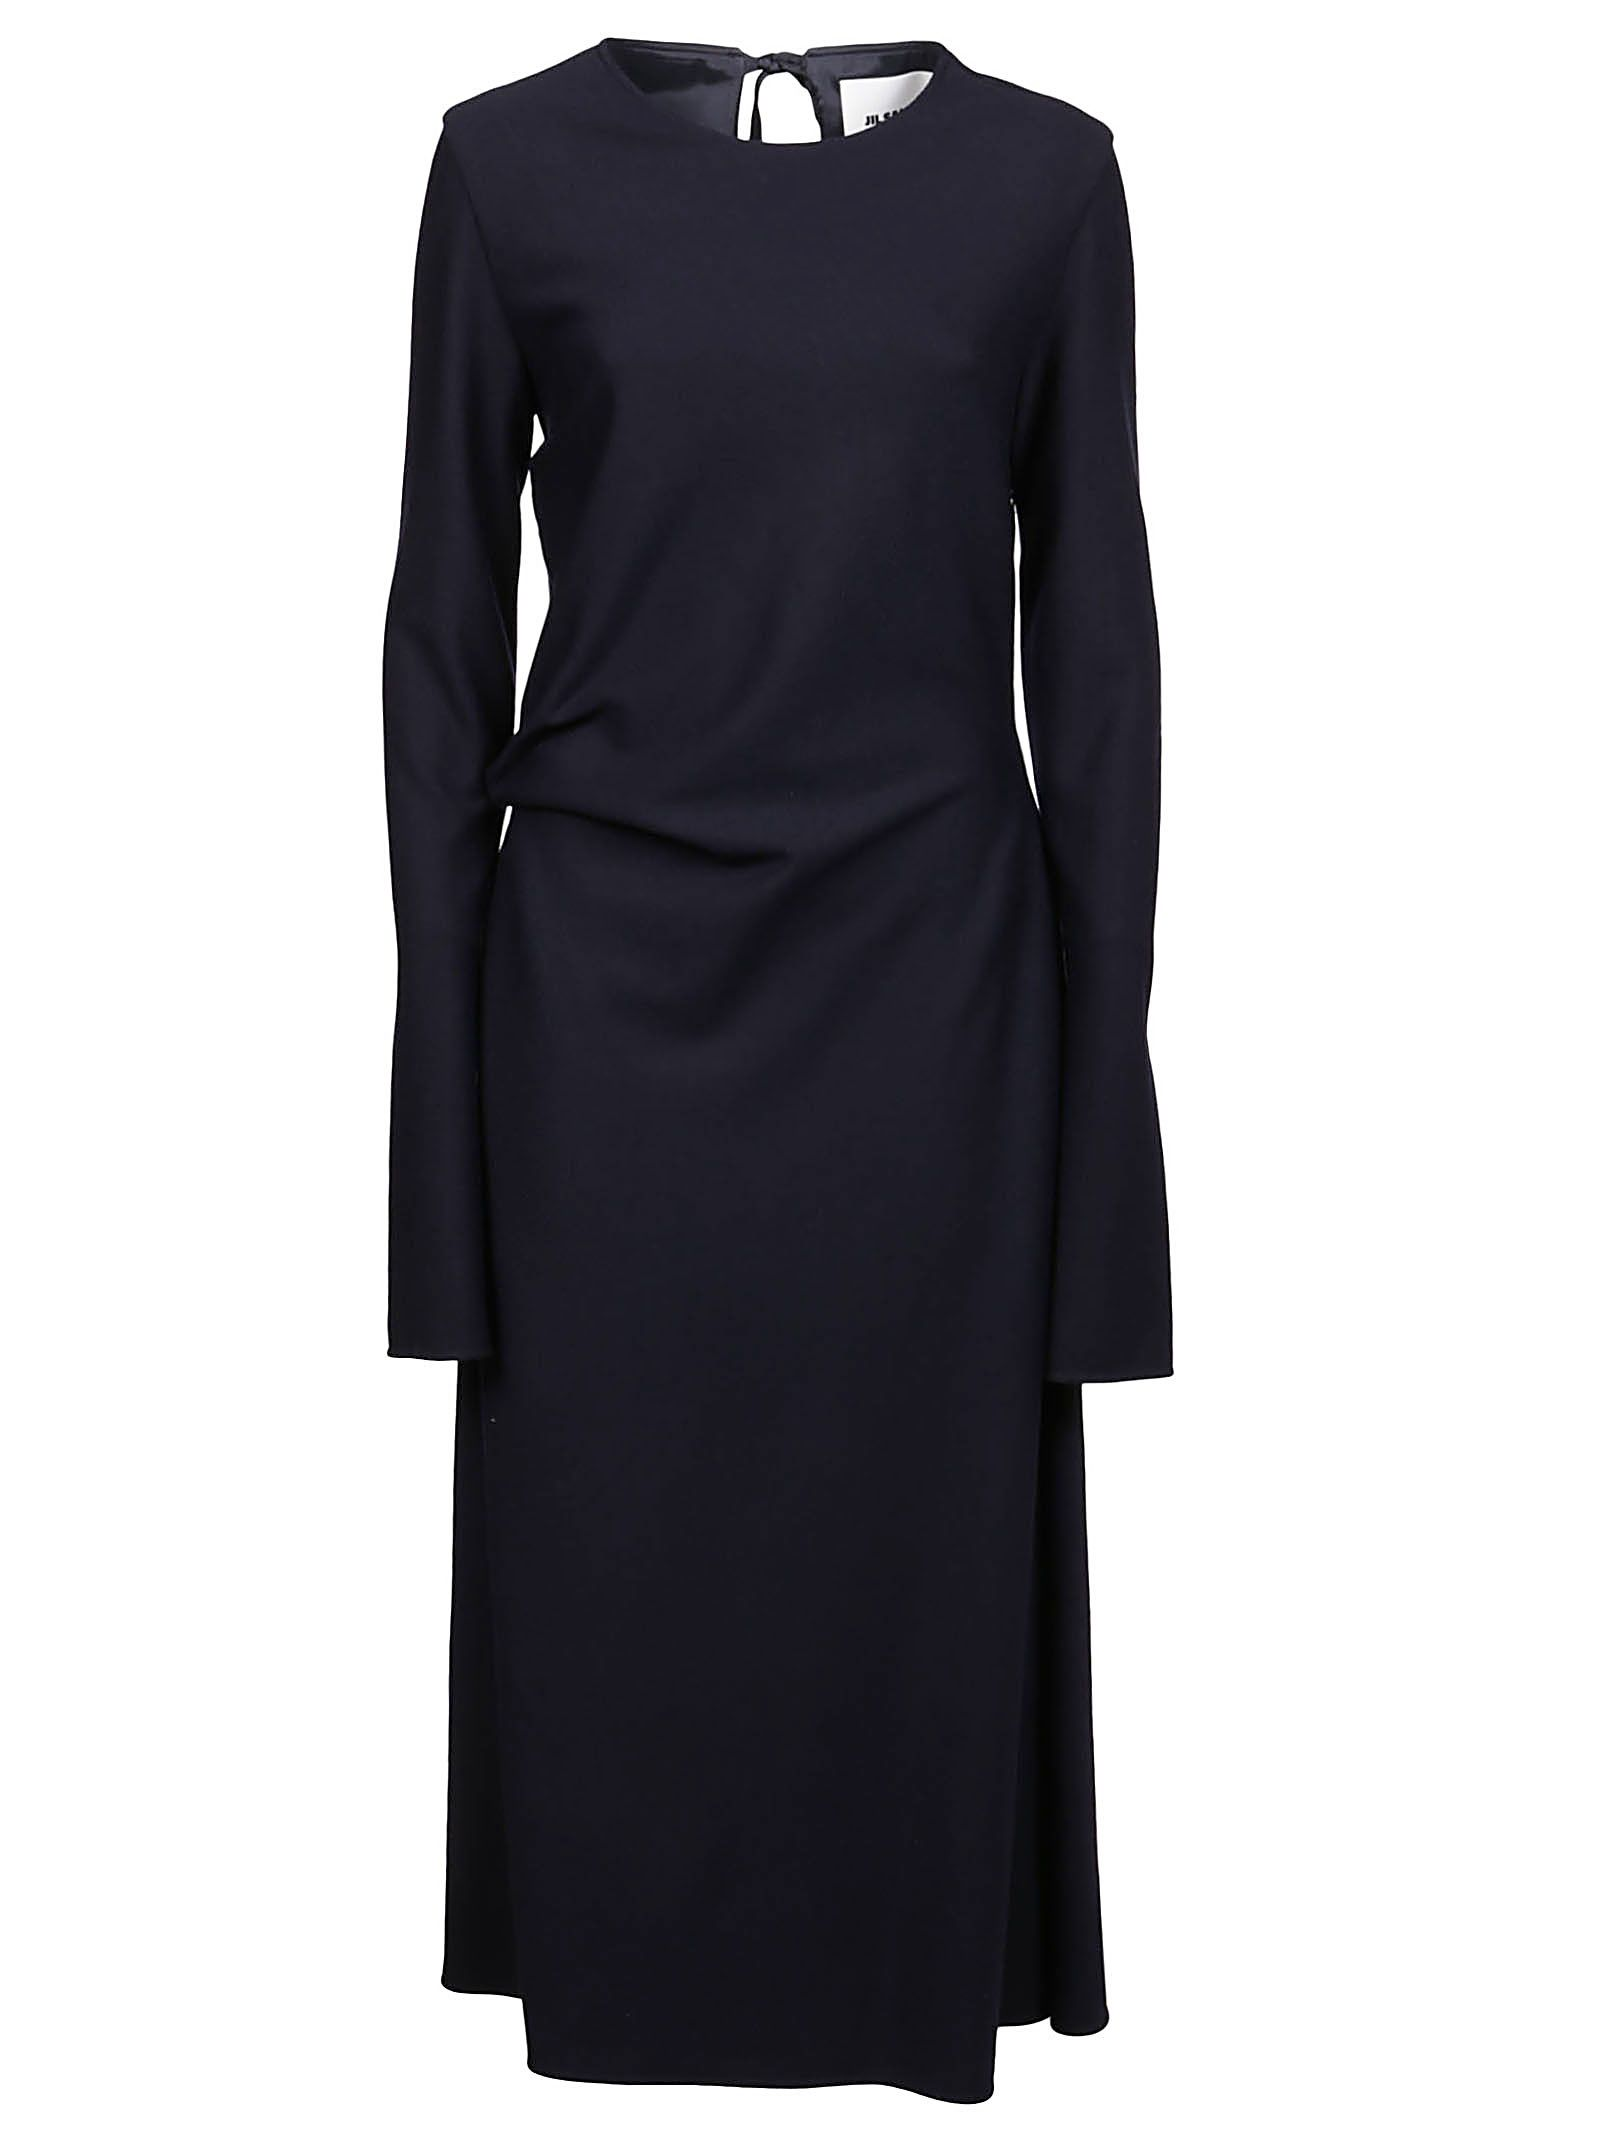 Jil Sander JIL SANDER WOMEN'S BLUE OTHER MATERIALS DRESS